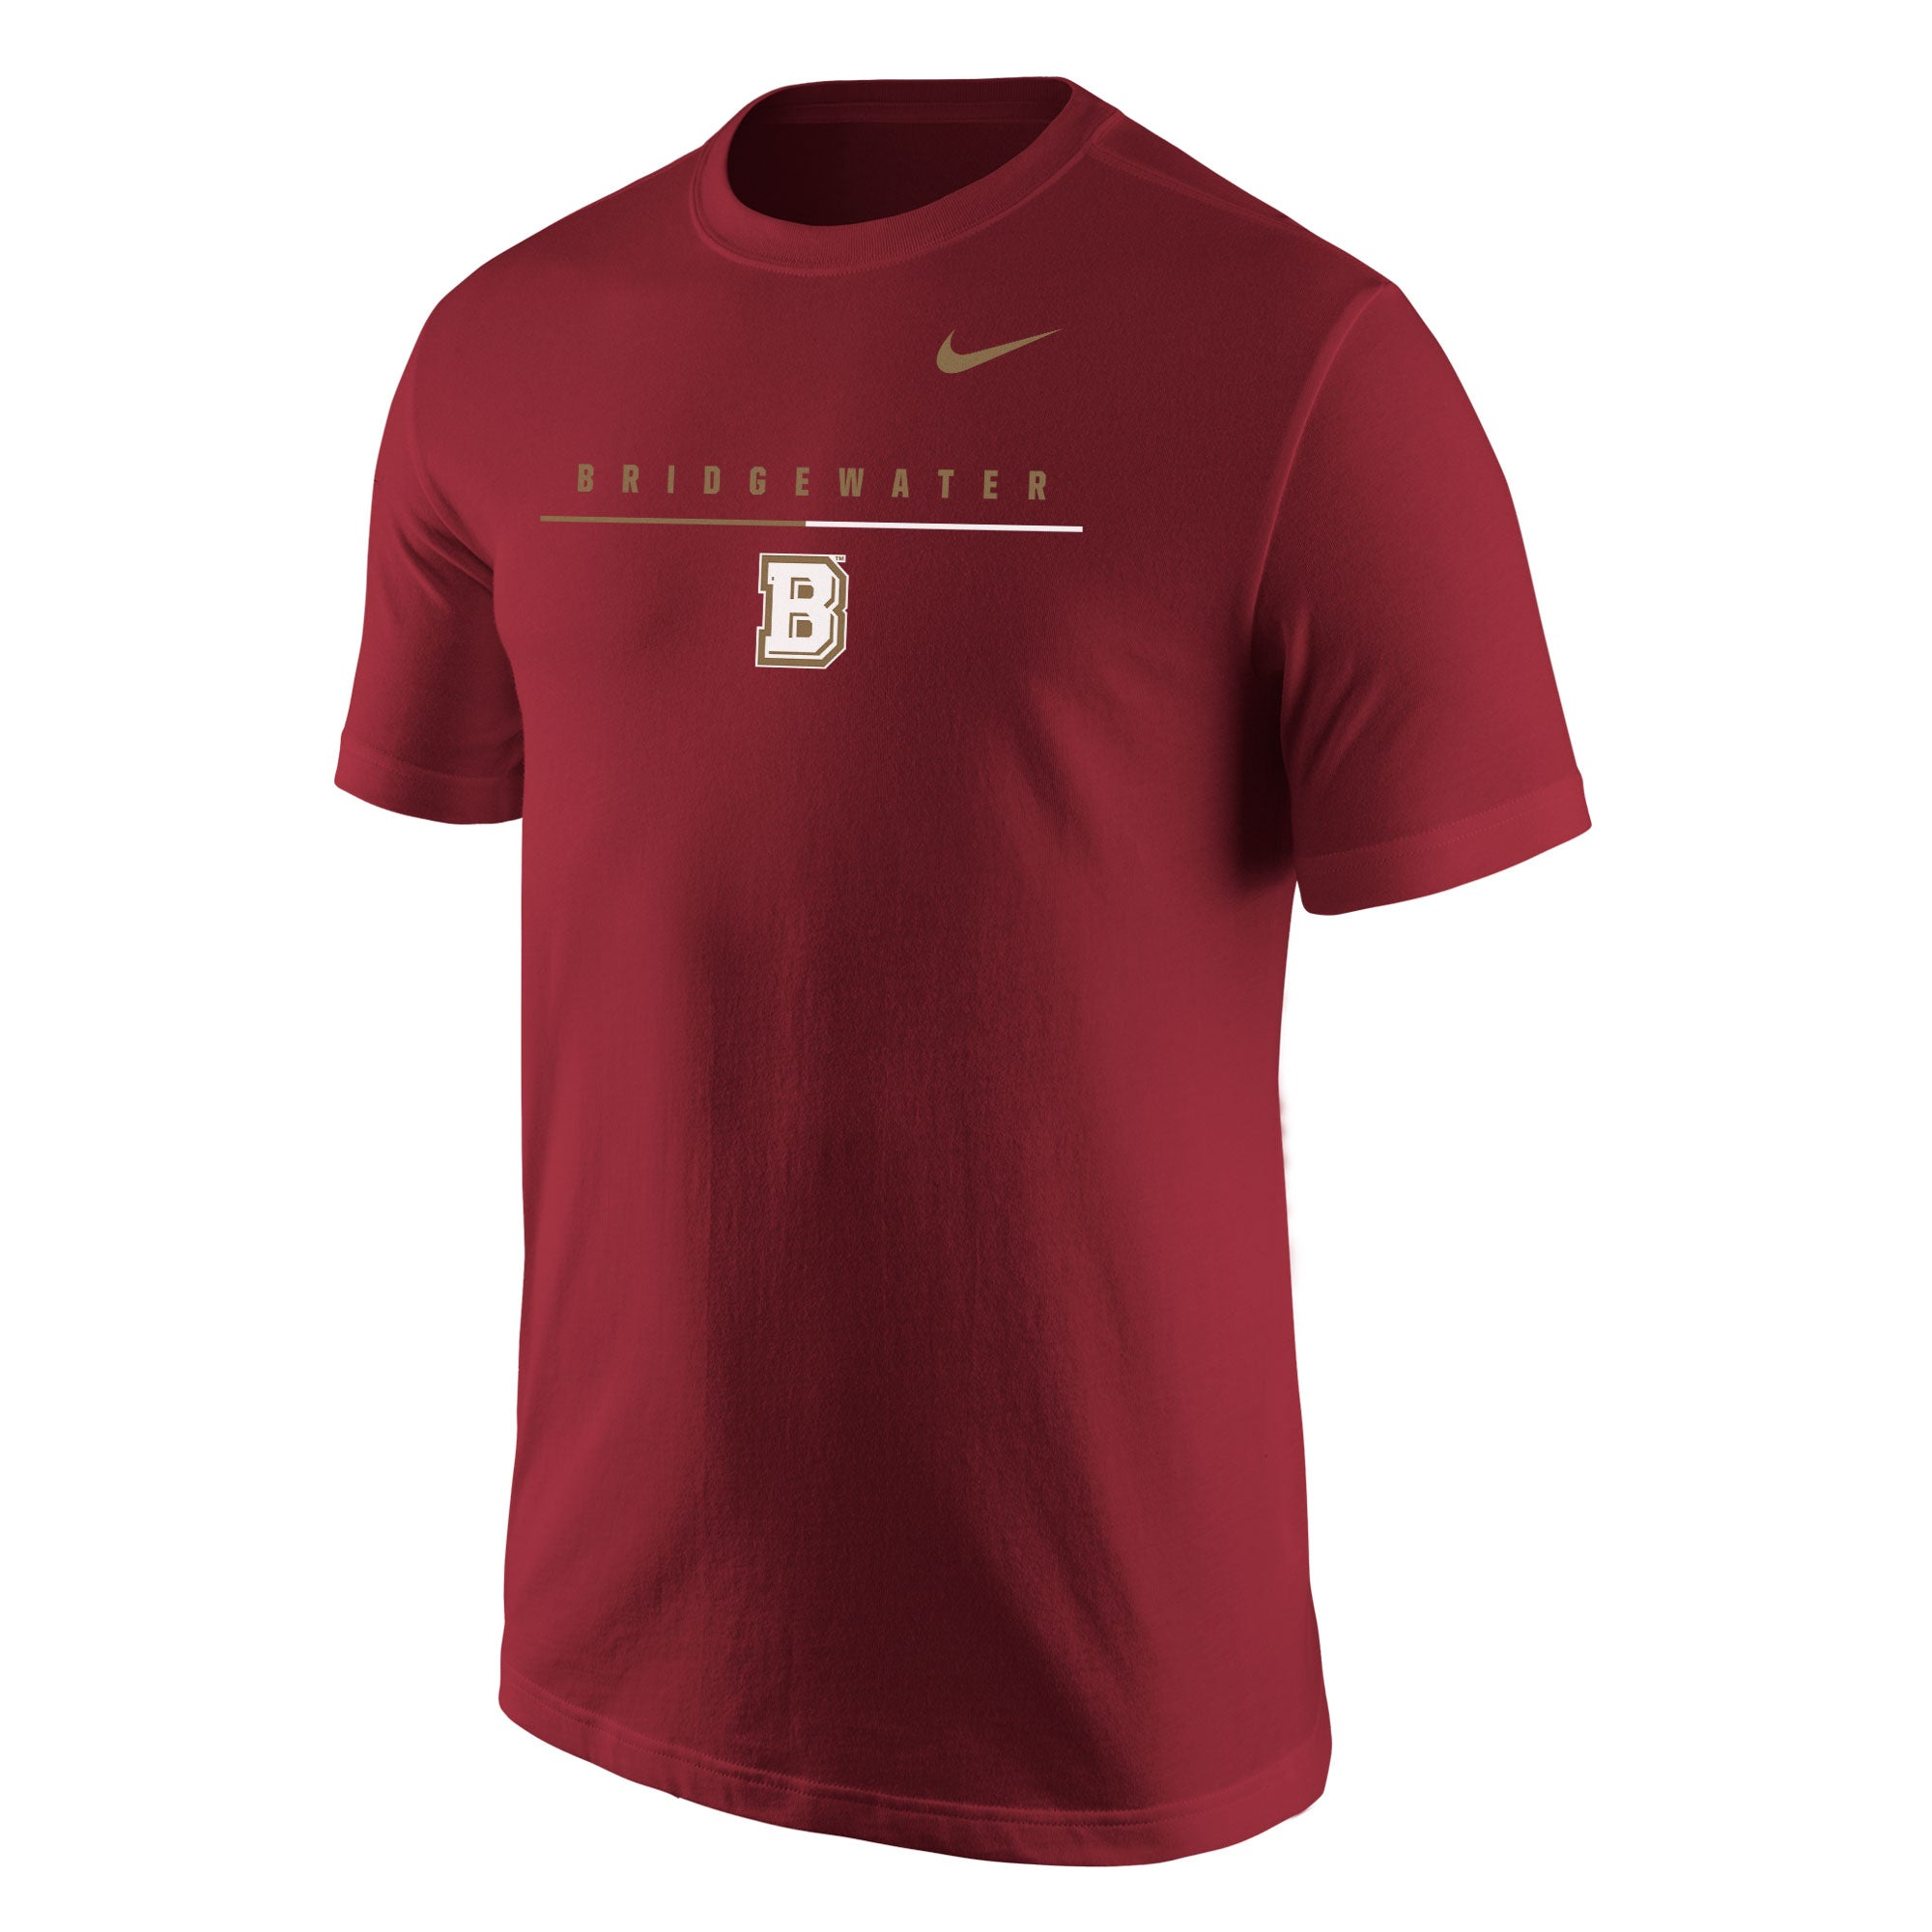 Bridgewater College Nike Crimson Core Short Sleeve Tee